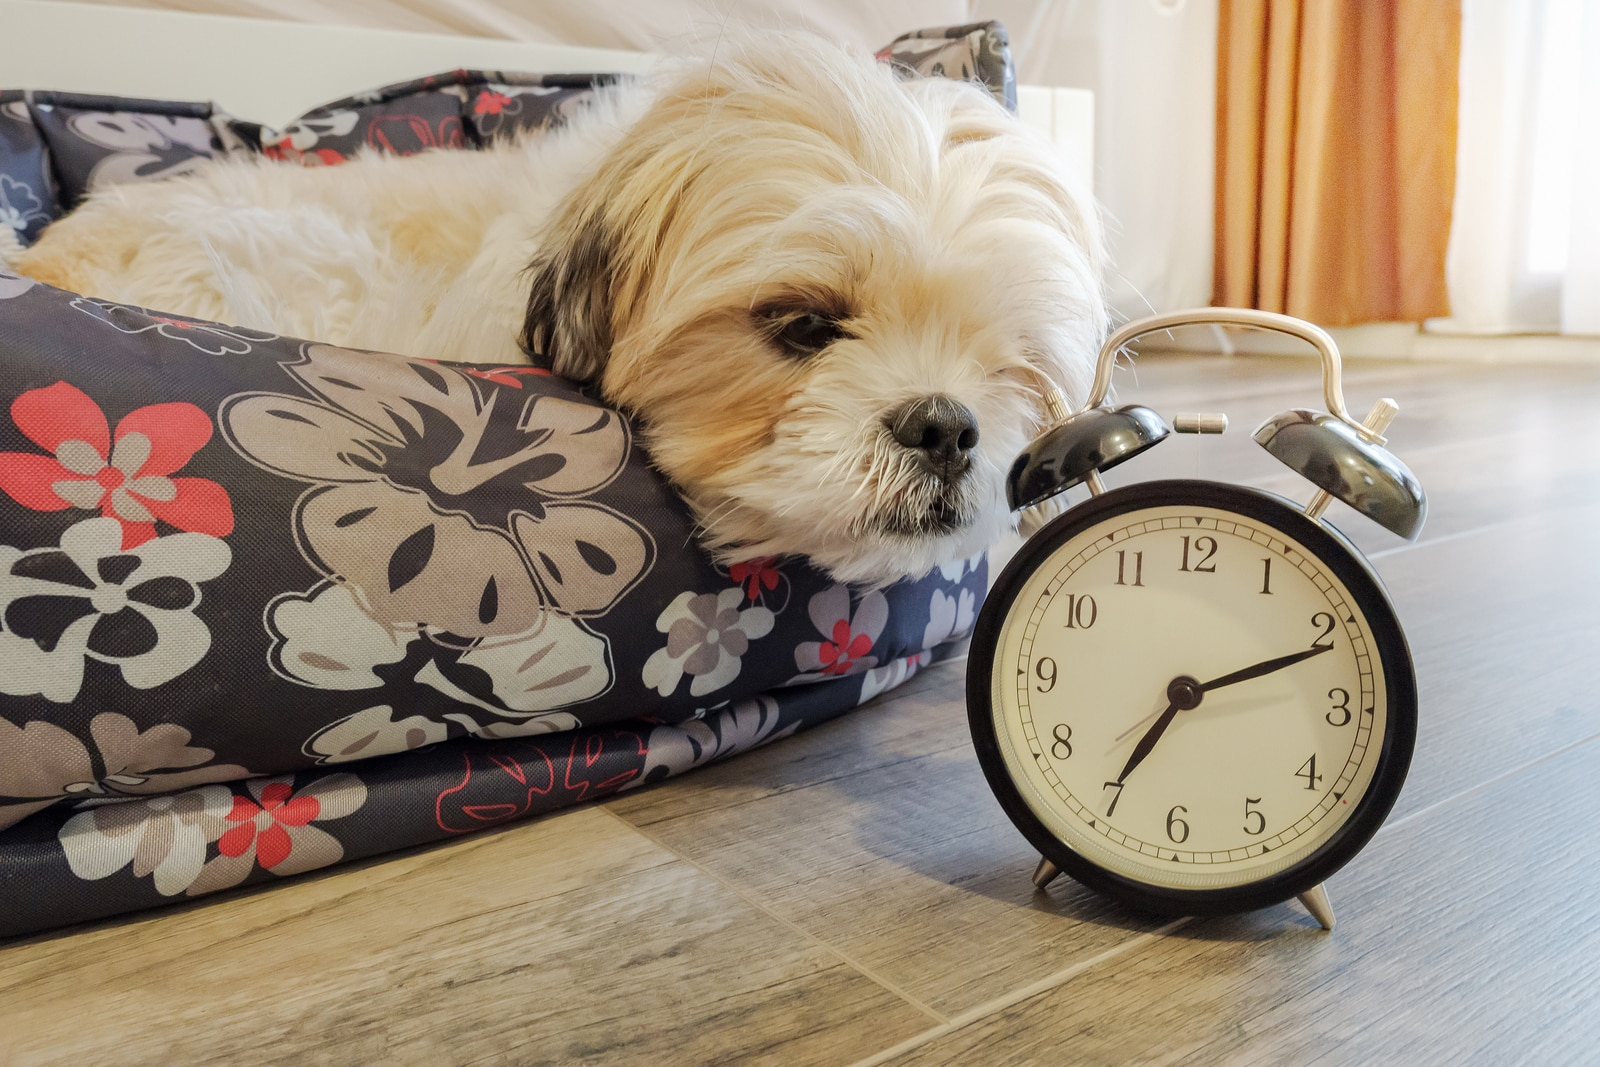 Dog lying in bed sniffs at an old-school alarm clock